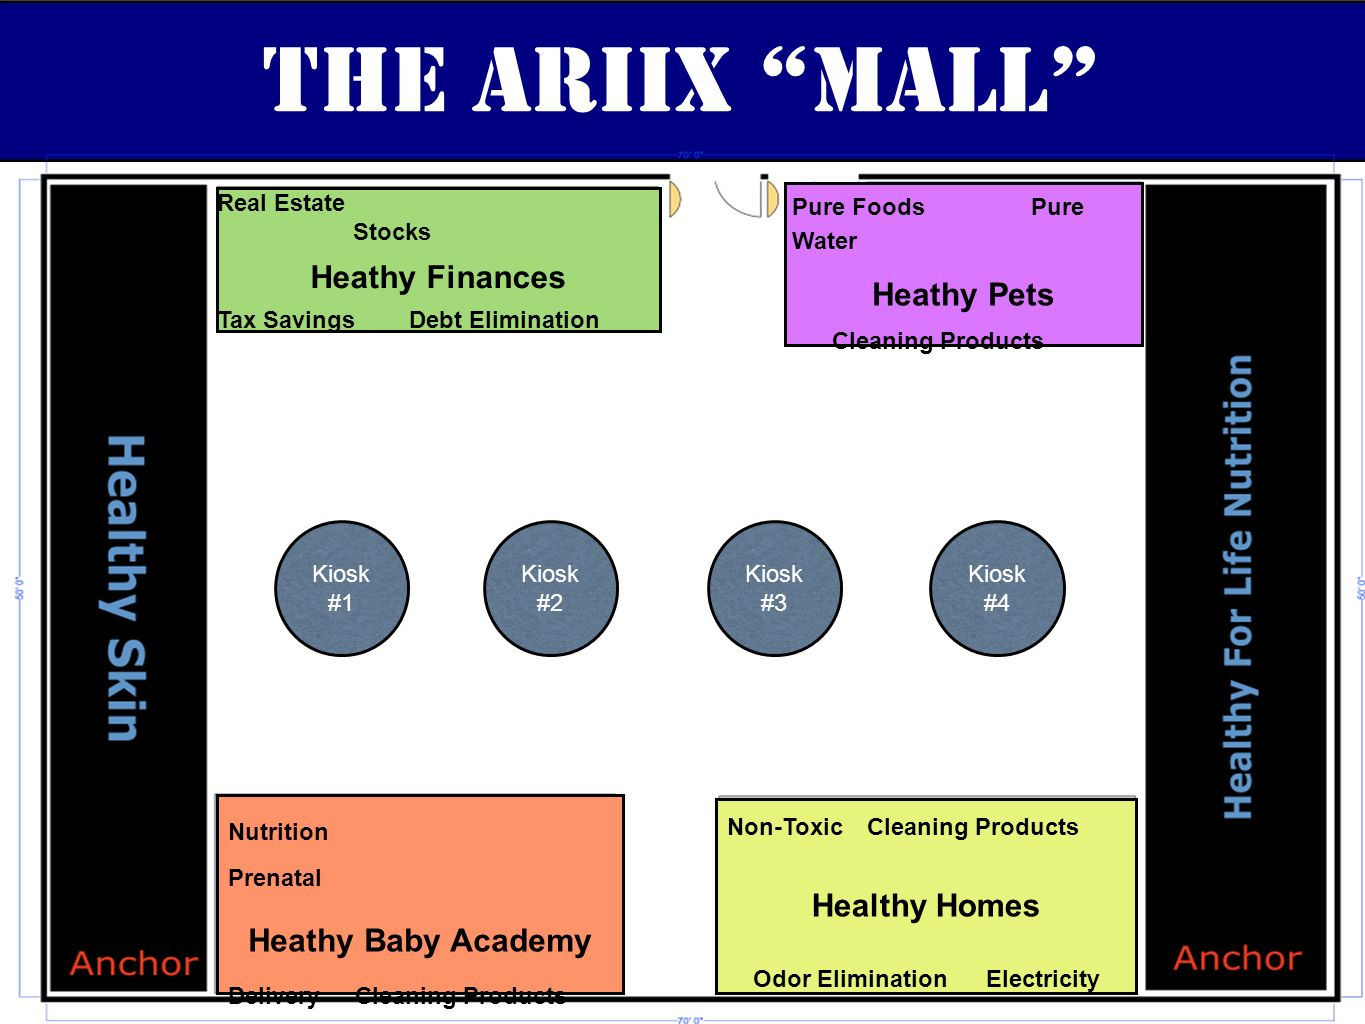 Kiosk #1 Kiosk #2 Kiosk #3 Kiosk #4 The ARIIX Mall Real Estate Stocks Heathy Finances Tax Savings Debt Elimination Nutrition Prenatal Heathy Baby Academy Delivery Cleaning Products Non-Toxic Cleaning Products Healthy Homes Odor Elimination Electricity Pure Foods Pure Water Heathy Pets Cleaning Products